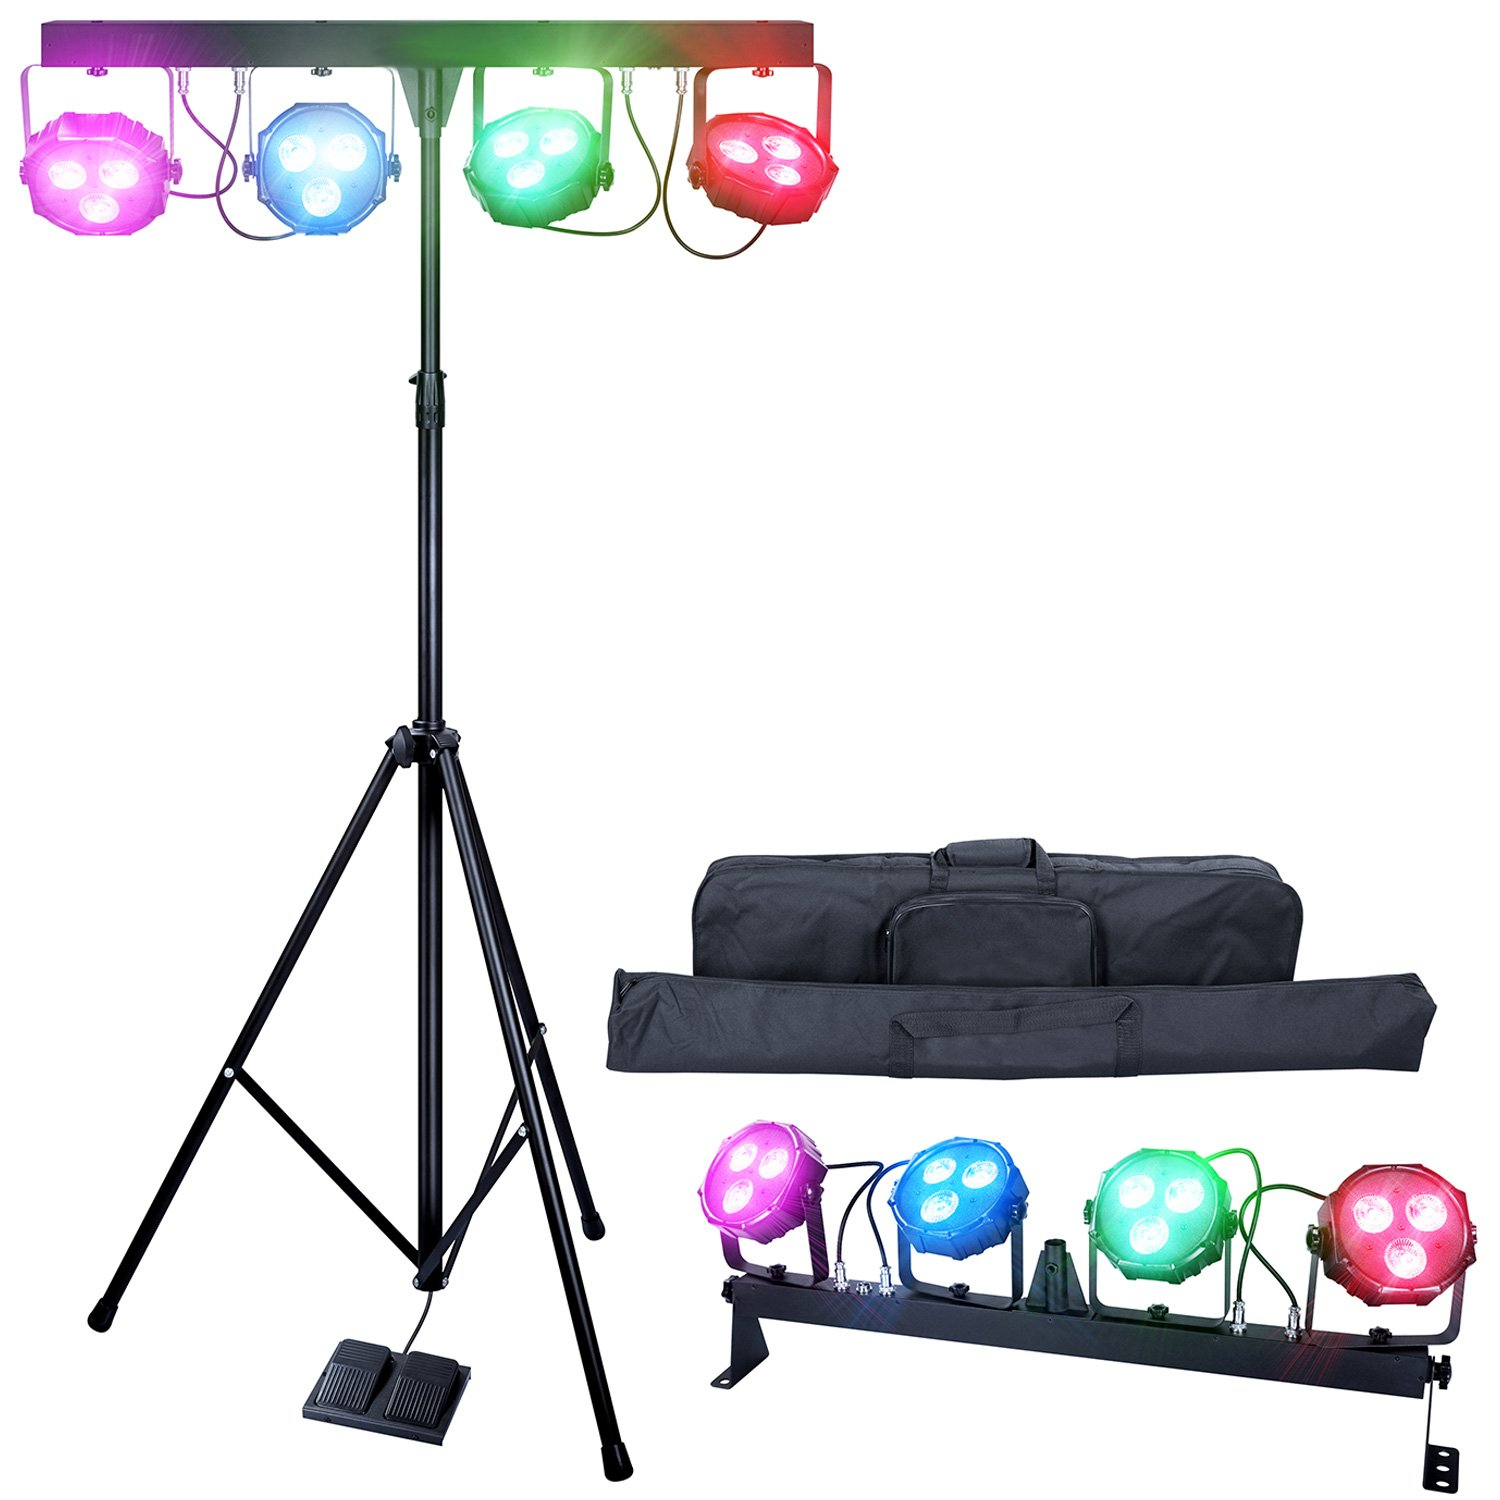 DragonX 4 Bar LED mobile DJ Stage Lighting Package/108W Portable RGB Par Can Kit Gig Spotlight Bar Set/Sound Activated Flex Wash Light Party System W/Stand by DragonX